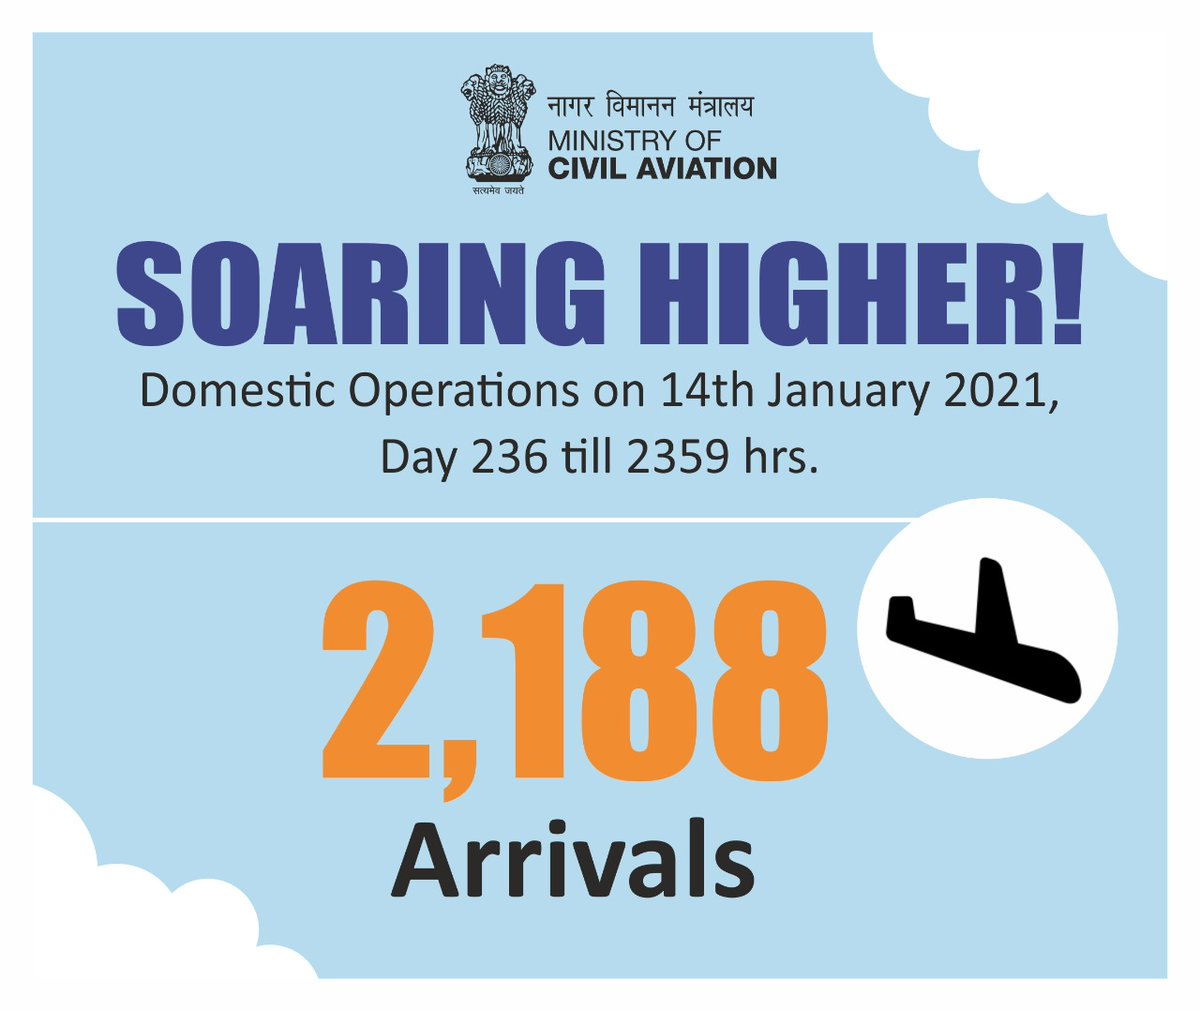 India soaring higher!  2188 flight arrivals took place across the country on 14th January. Aviation operations continue to soar! #SabUdenSabJuden #IndiaFliesHigh